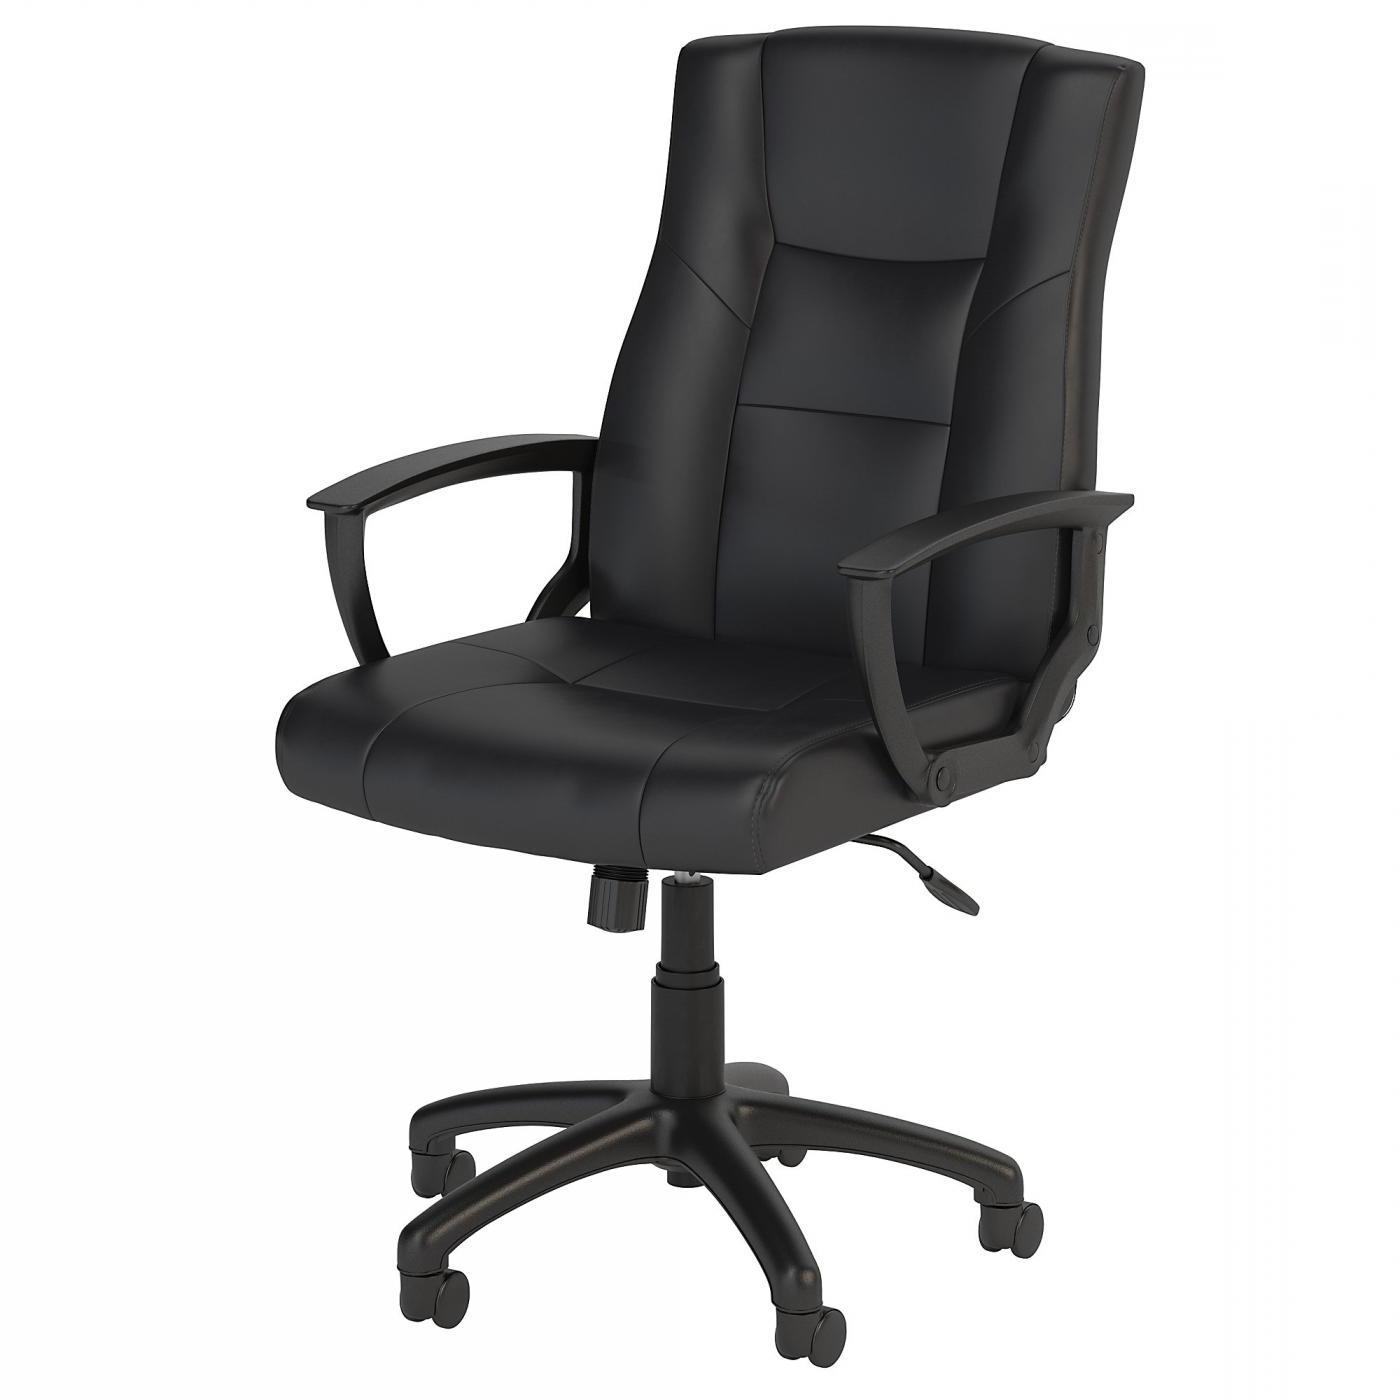 <font color=#c60><b>BUSH BUSINESS FURNITURE ACCORD EXECUTIVE OFFICE CHAIR. FREE SHIPPING</font></b> </font></b></font></b>